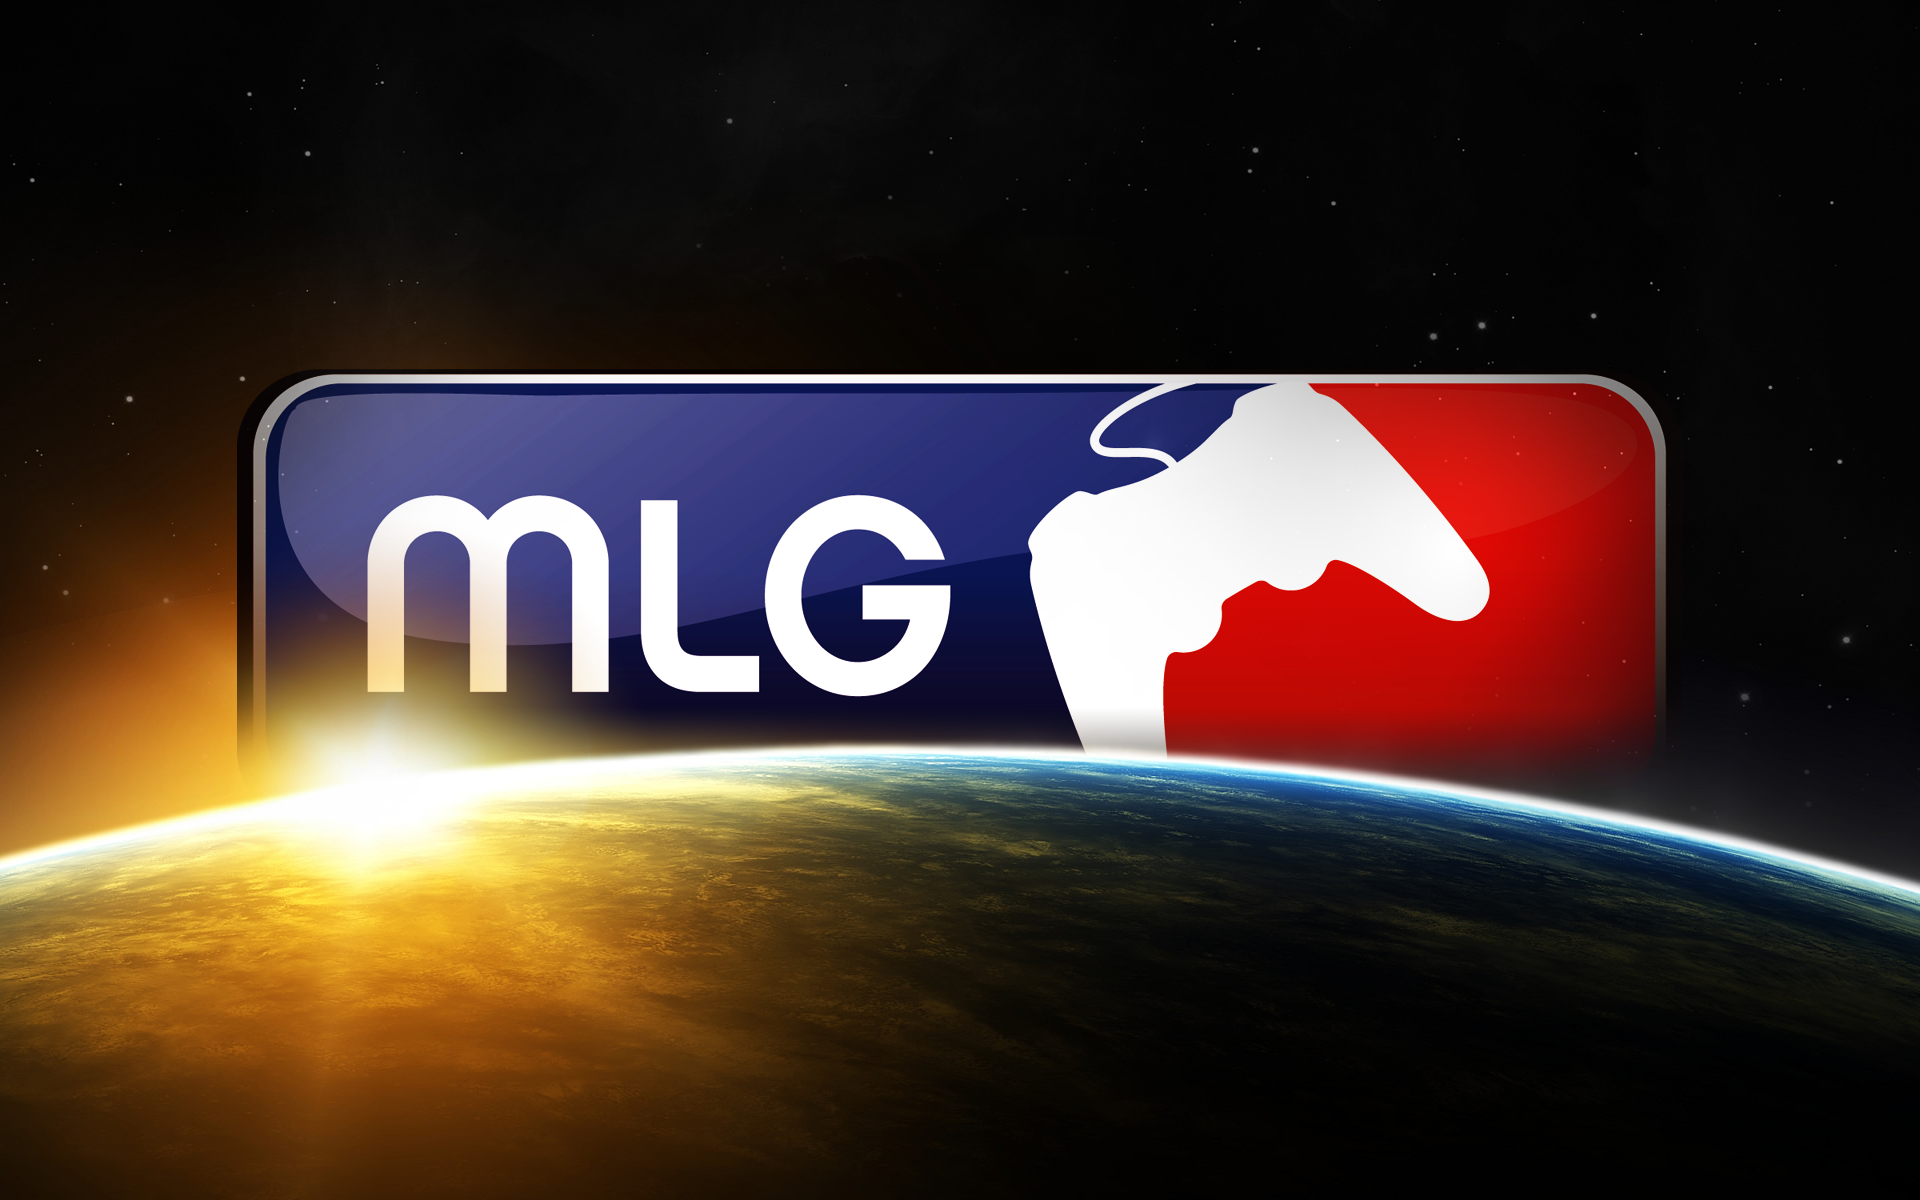 Major League Gaming Wallpaper